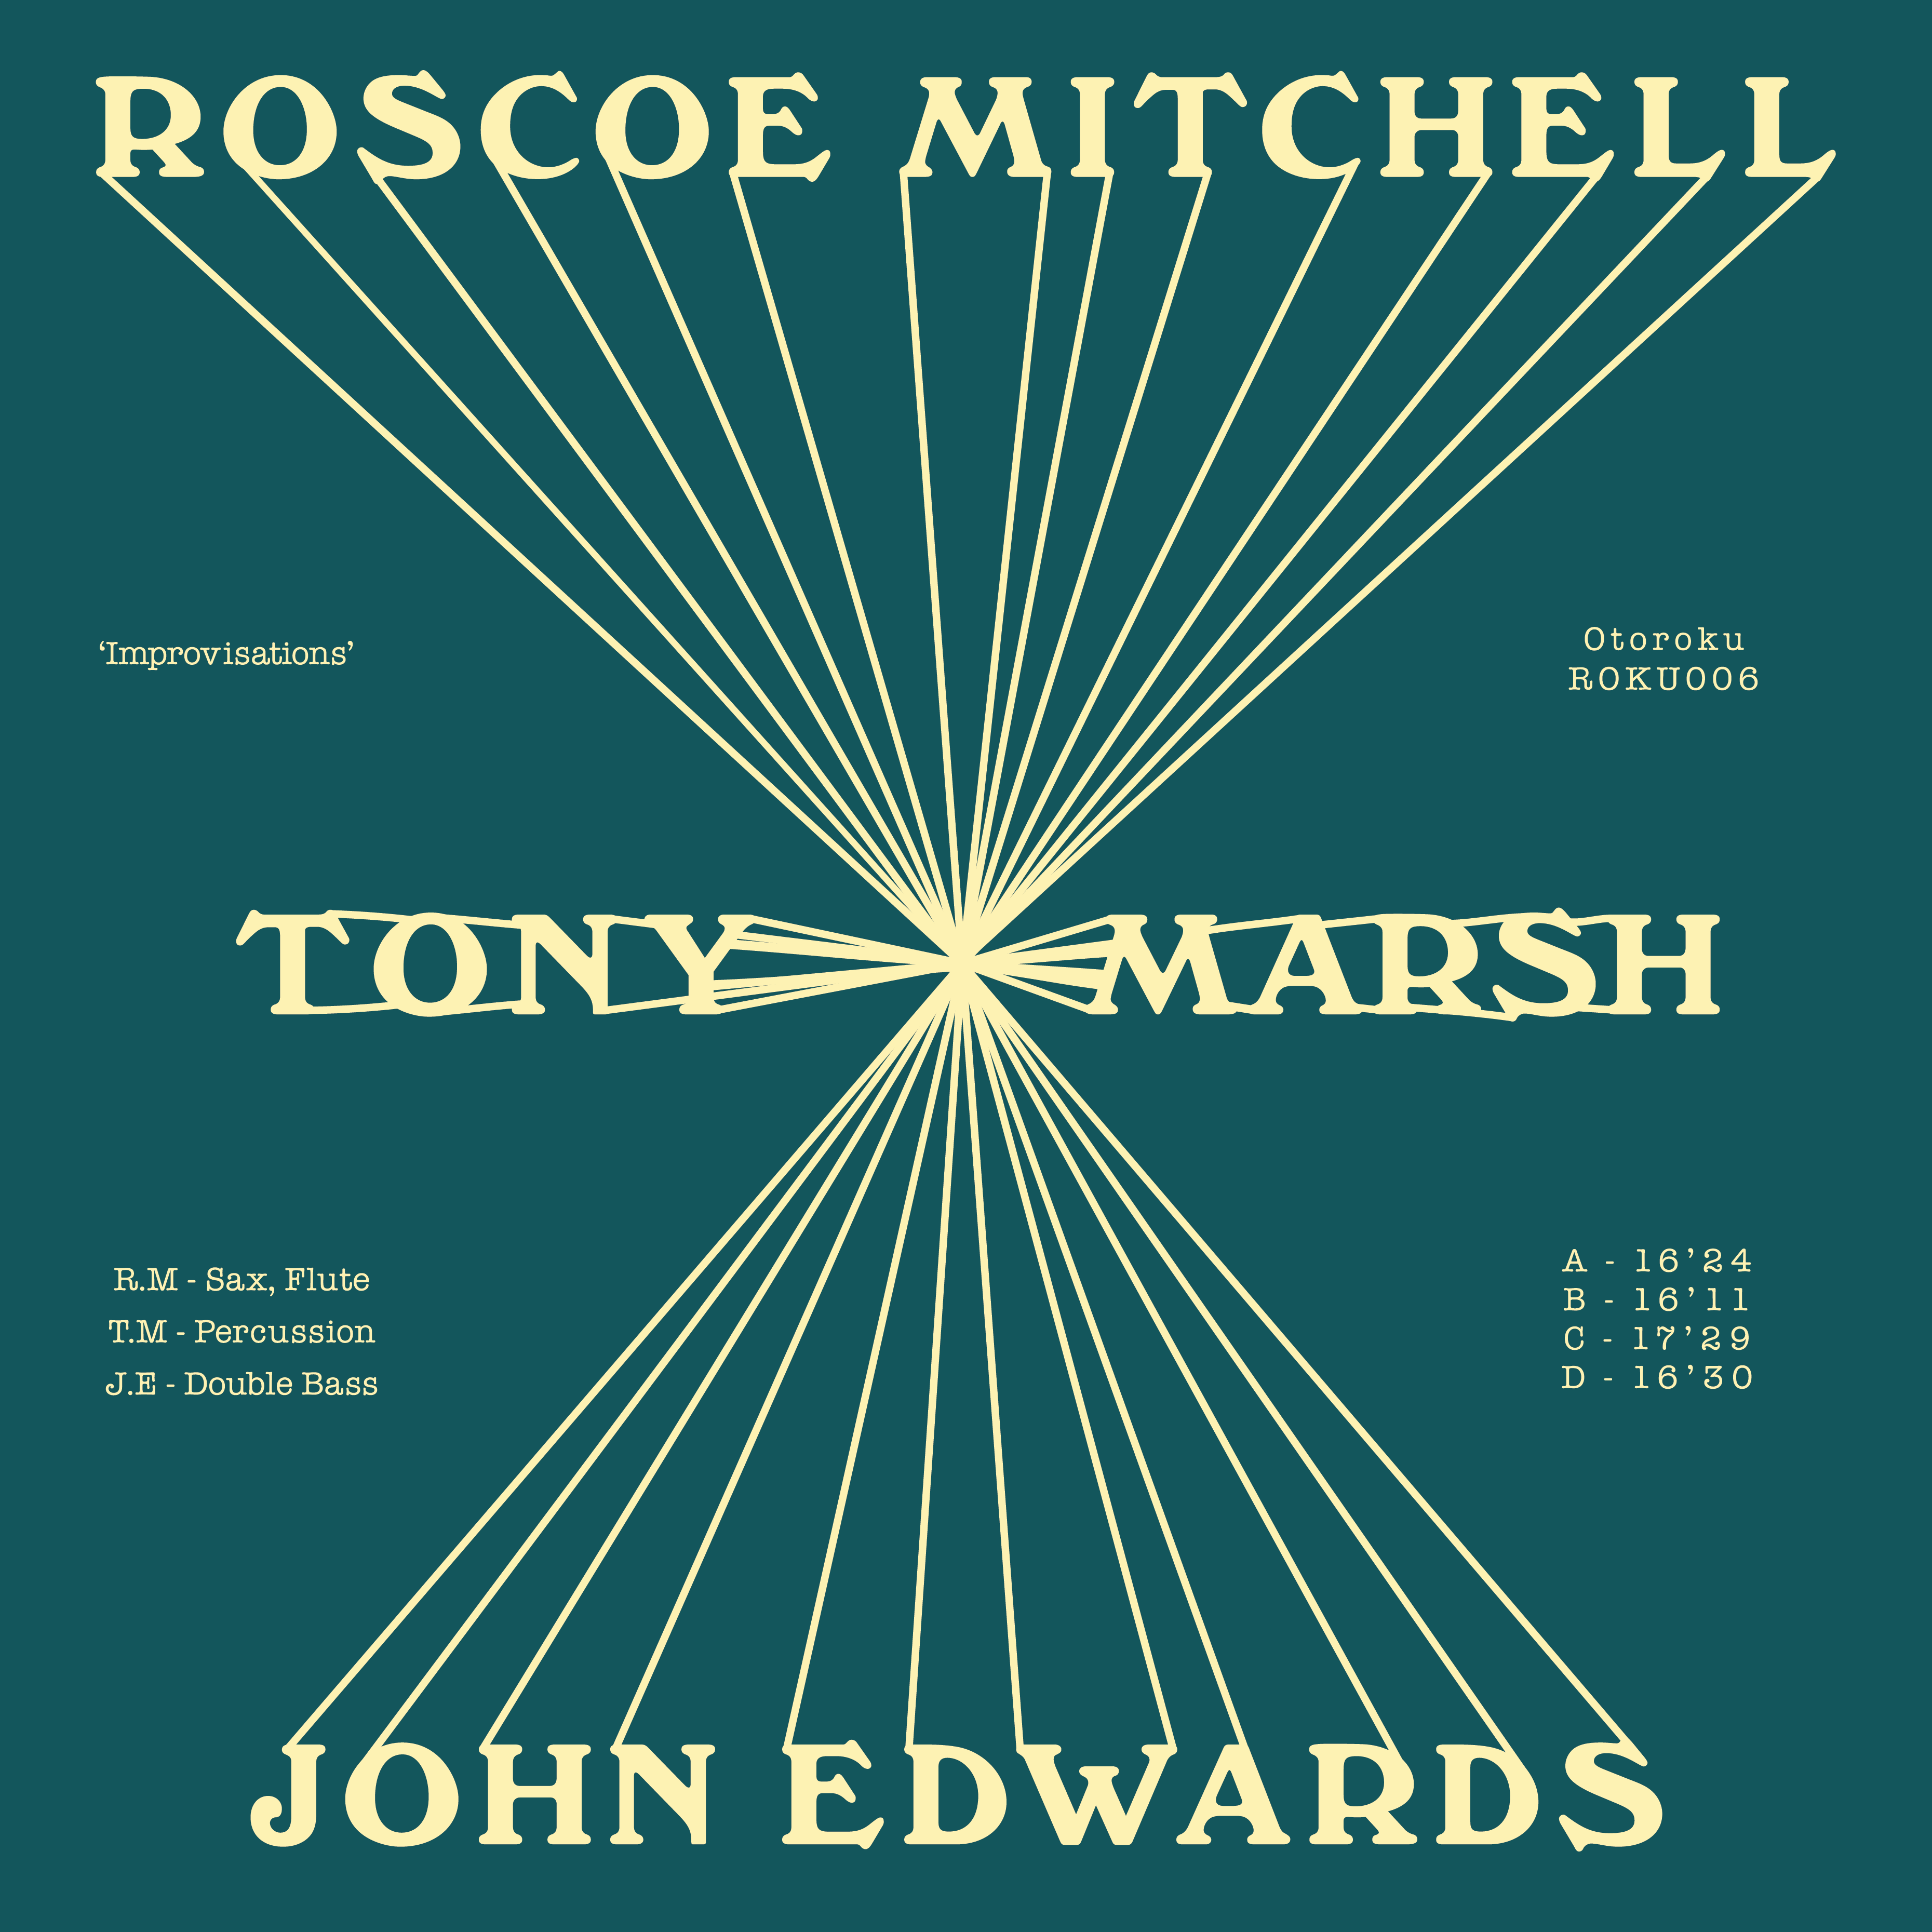 ROSCOE MITCHELL/<wbr><wbr>TONY MARSH/<wbr><wbr>JOHN EDWARDS - Improvisations : OTORoku <wbr>(UK)